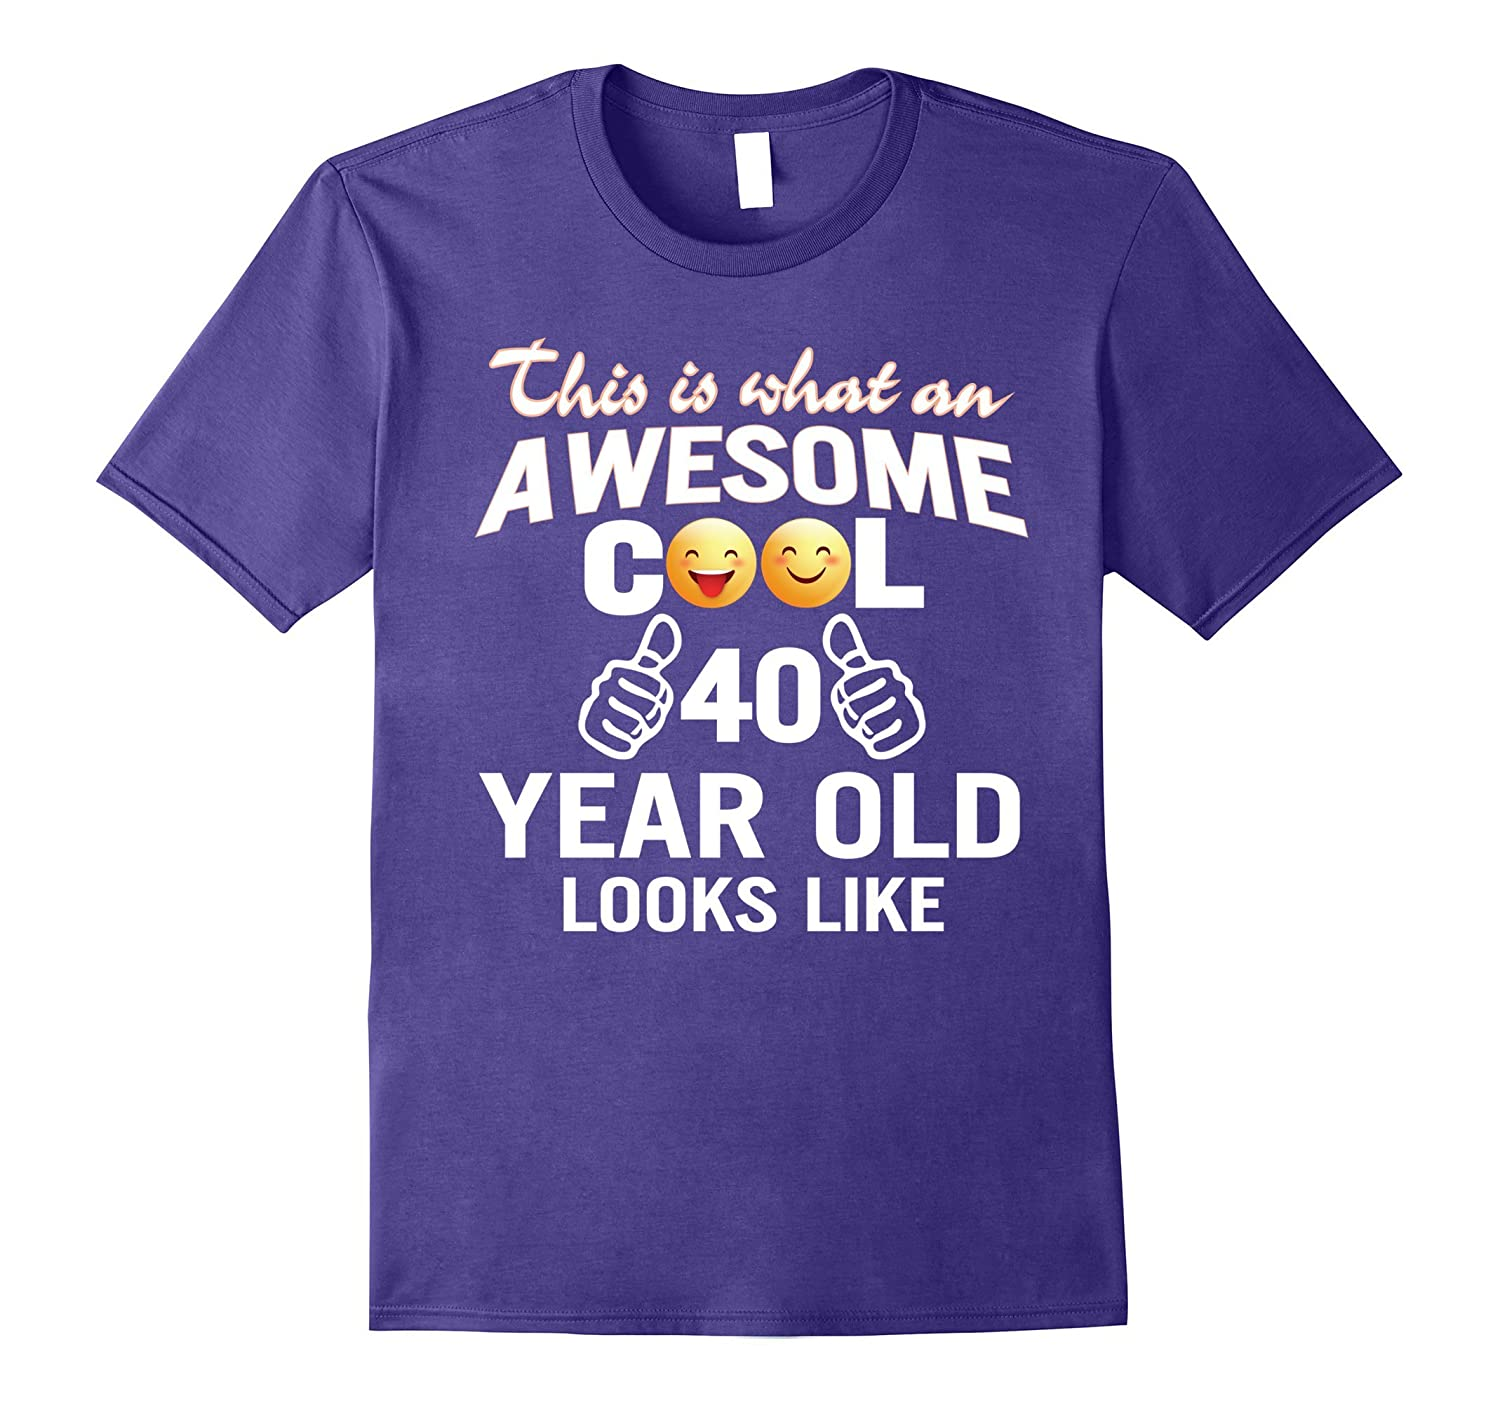 Awesome Cool 40 Years Old Looks Like Funny T-Shirt Gift-Vaci